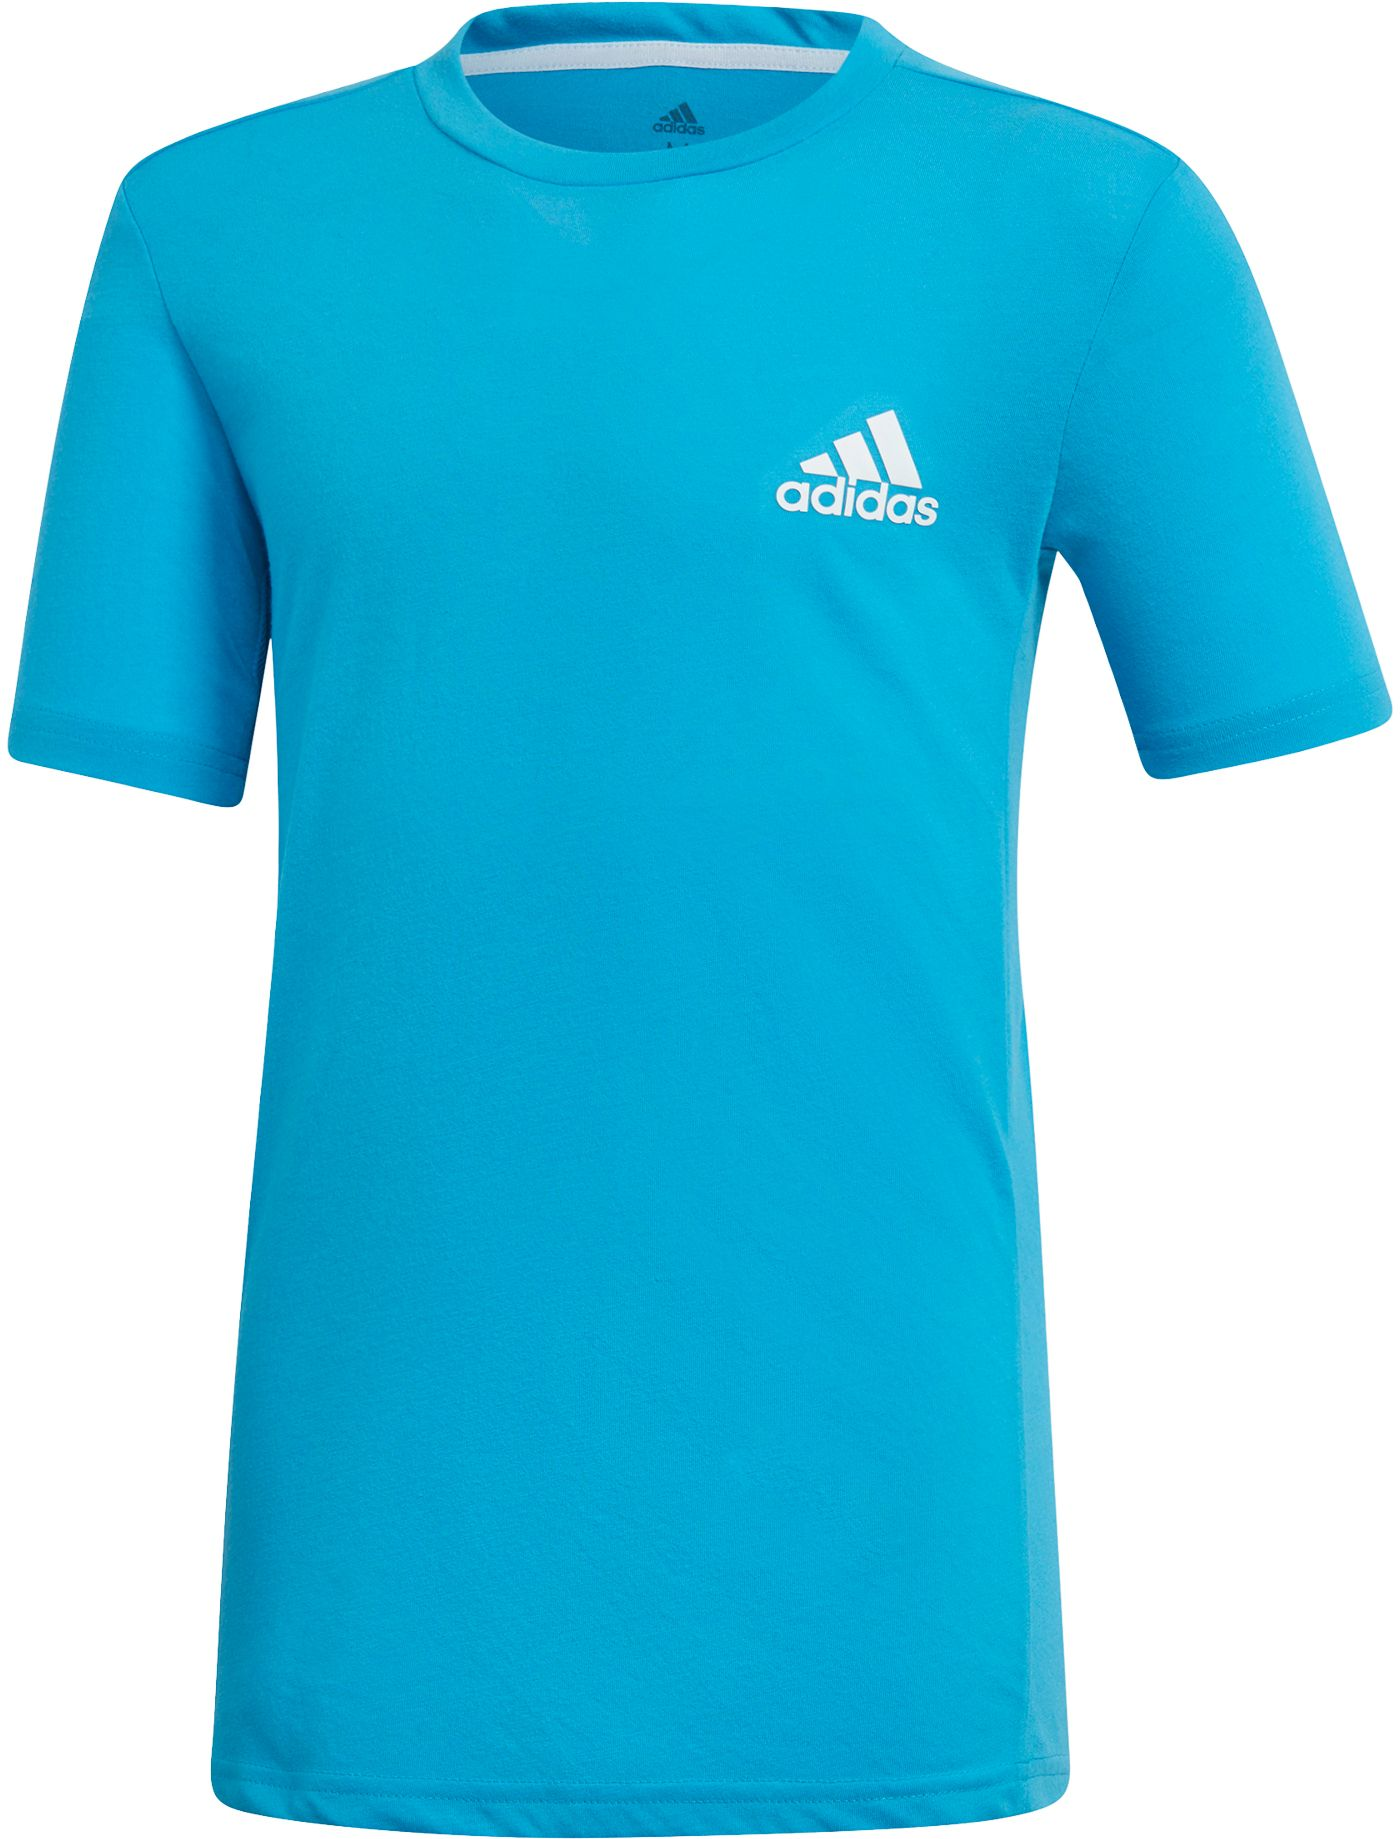 adidas Boys' Escouade Tennis T-Shirt